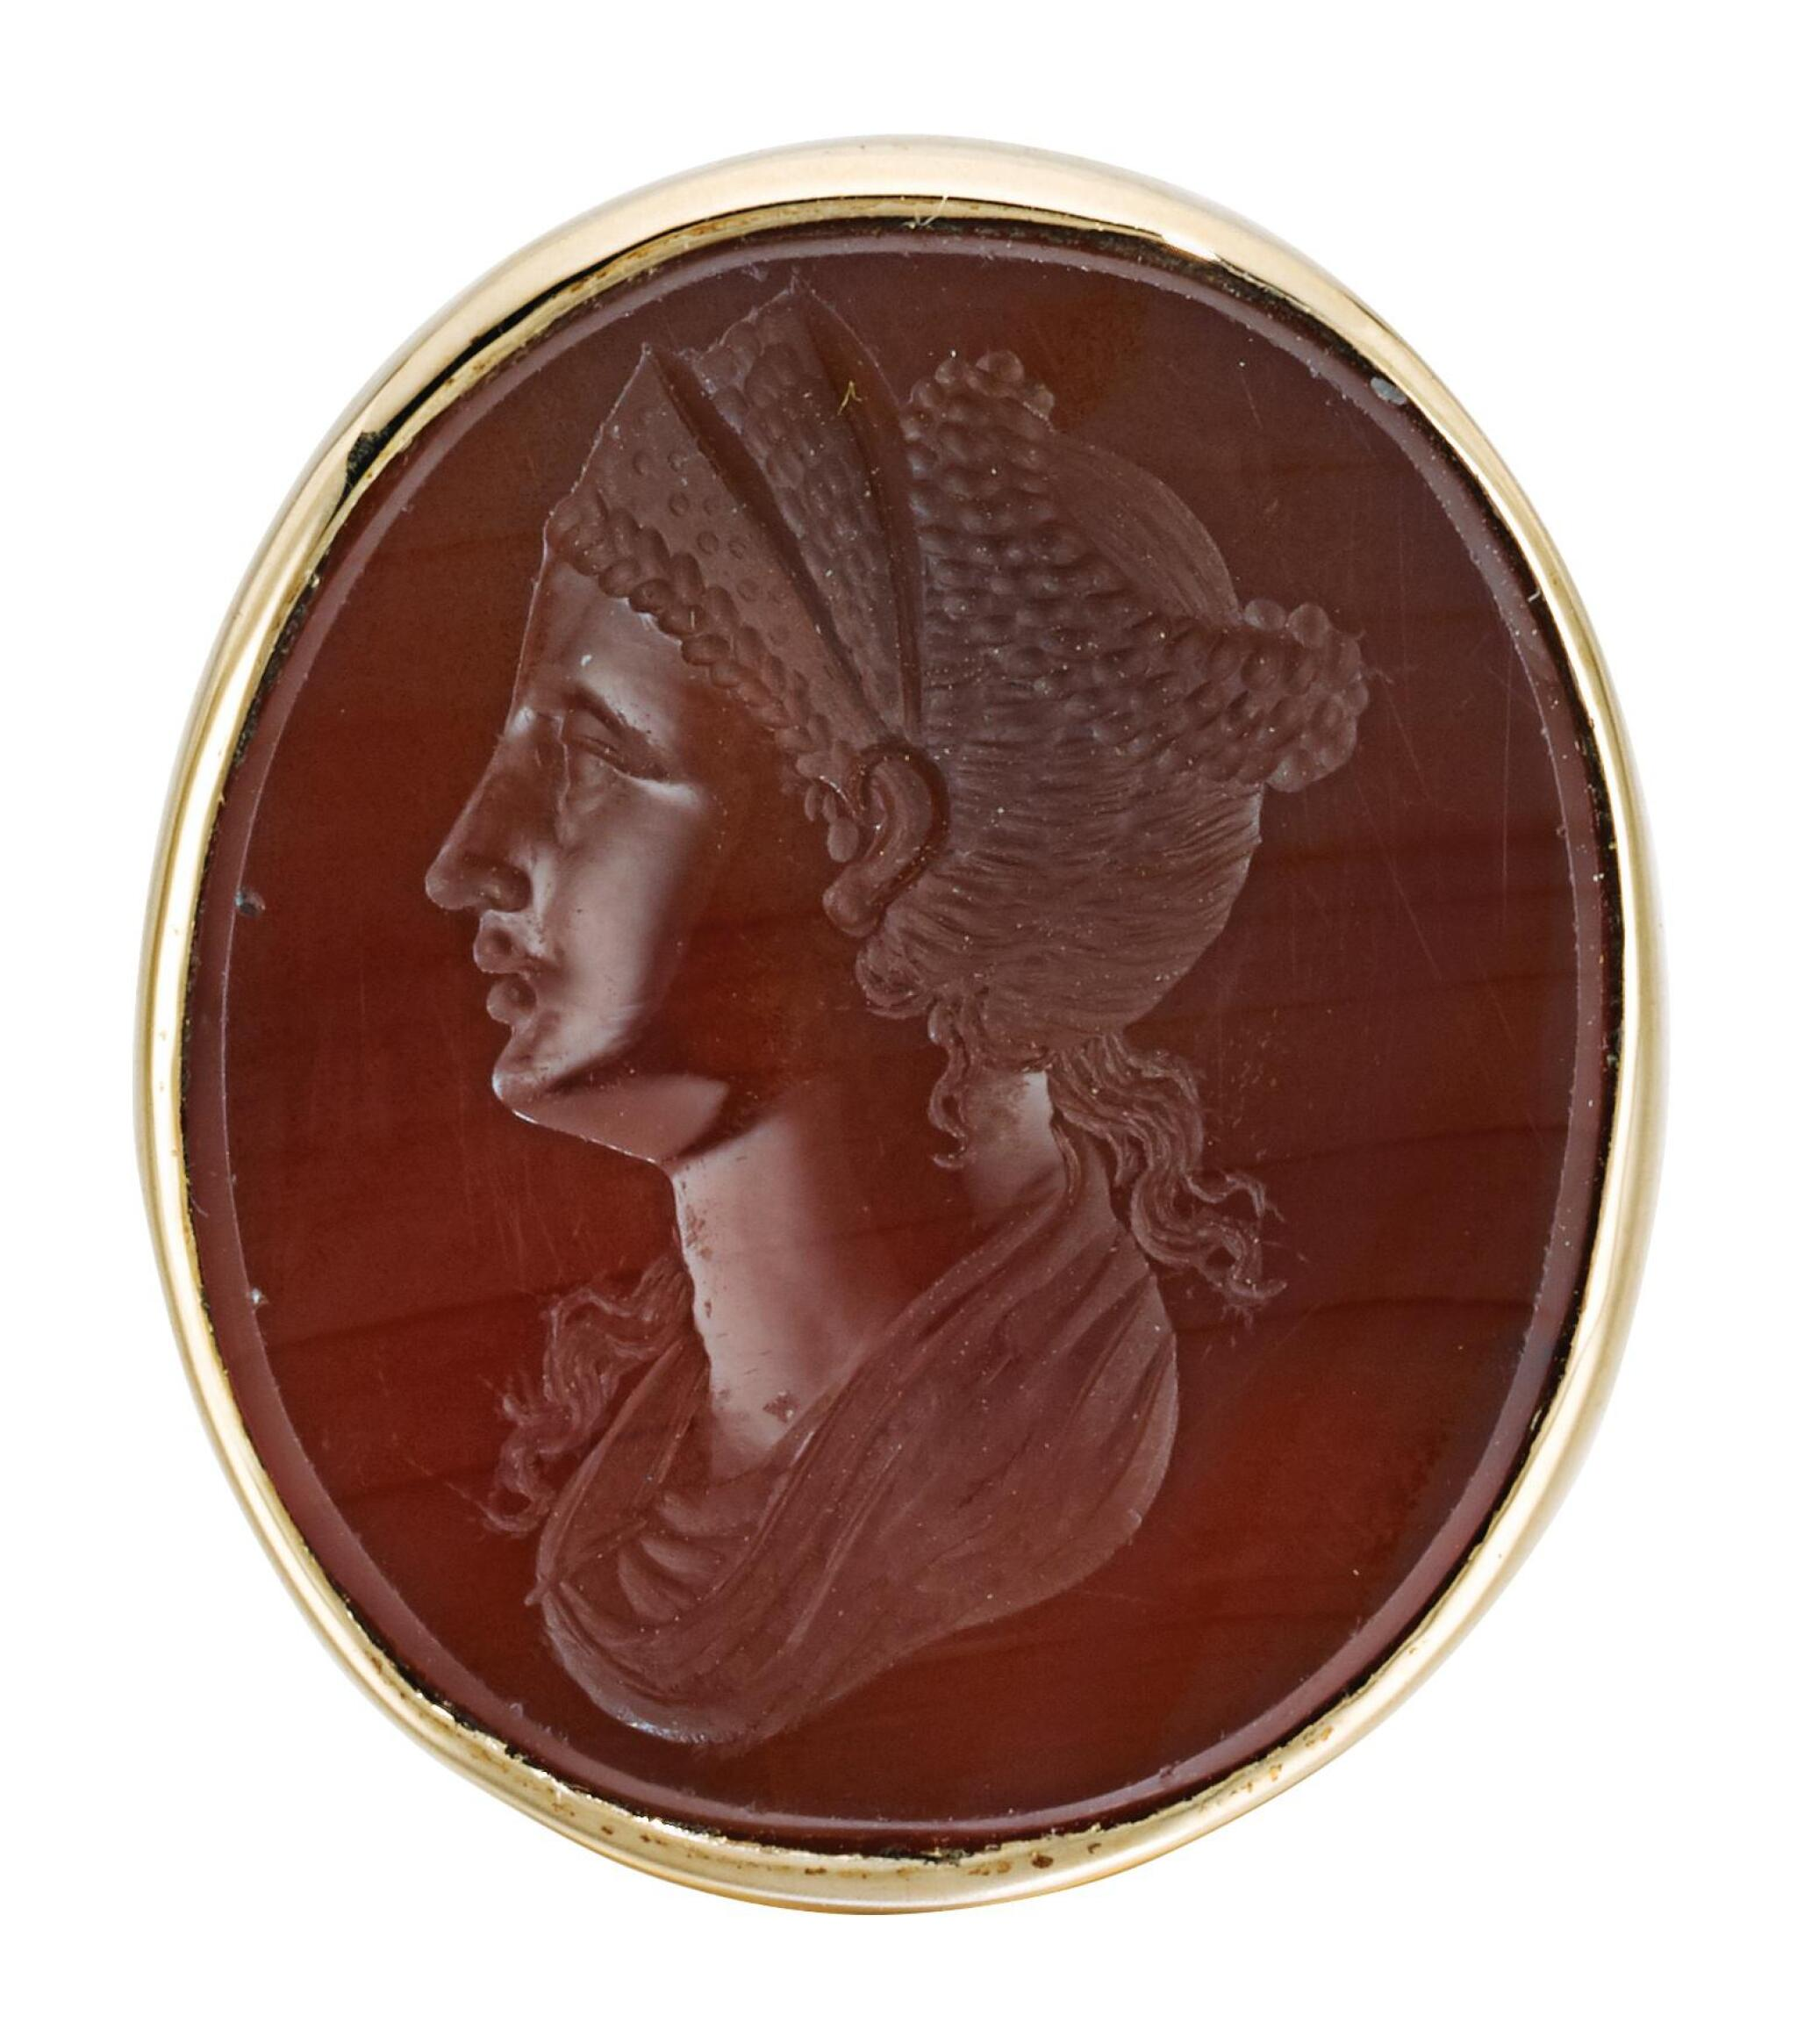 View 1 of Lot 91. ITALIAN, PROBABLY EARLY 19TH CENTURY | INTAGLIO WITH A LADY WEARING A TIARA, POSSIBLY FAUSTINA THE ELDER.